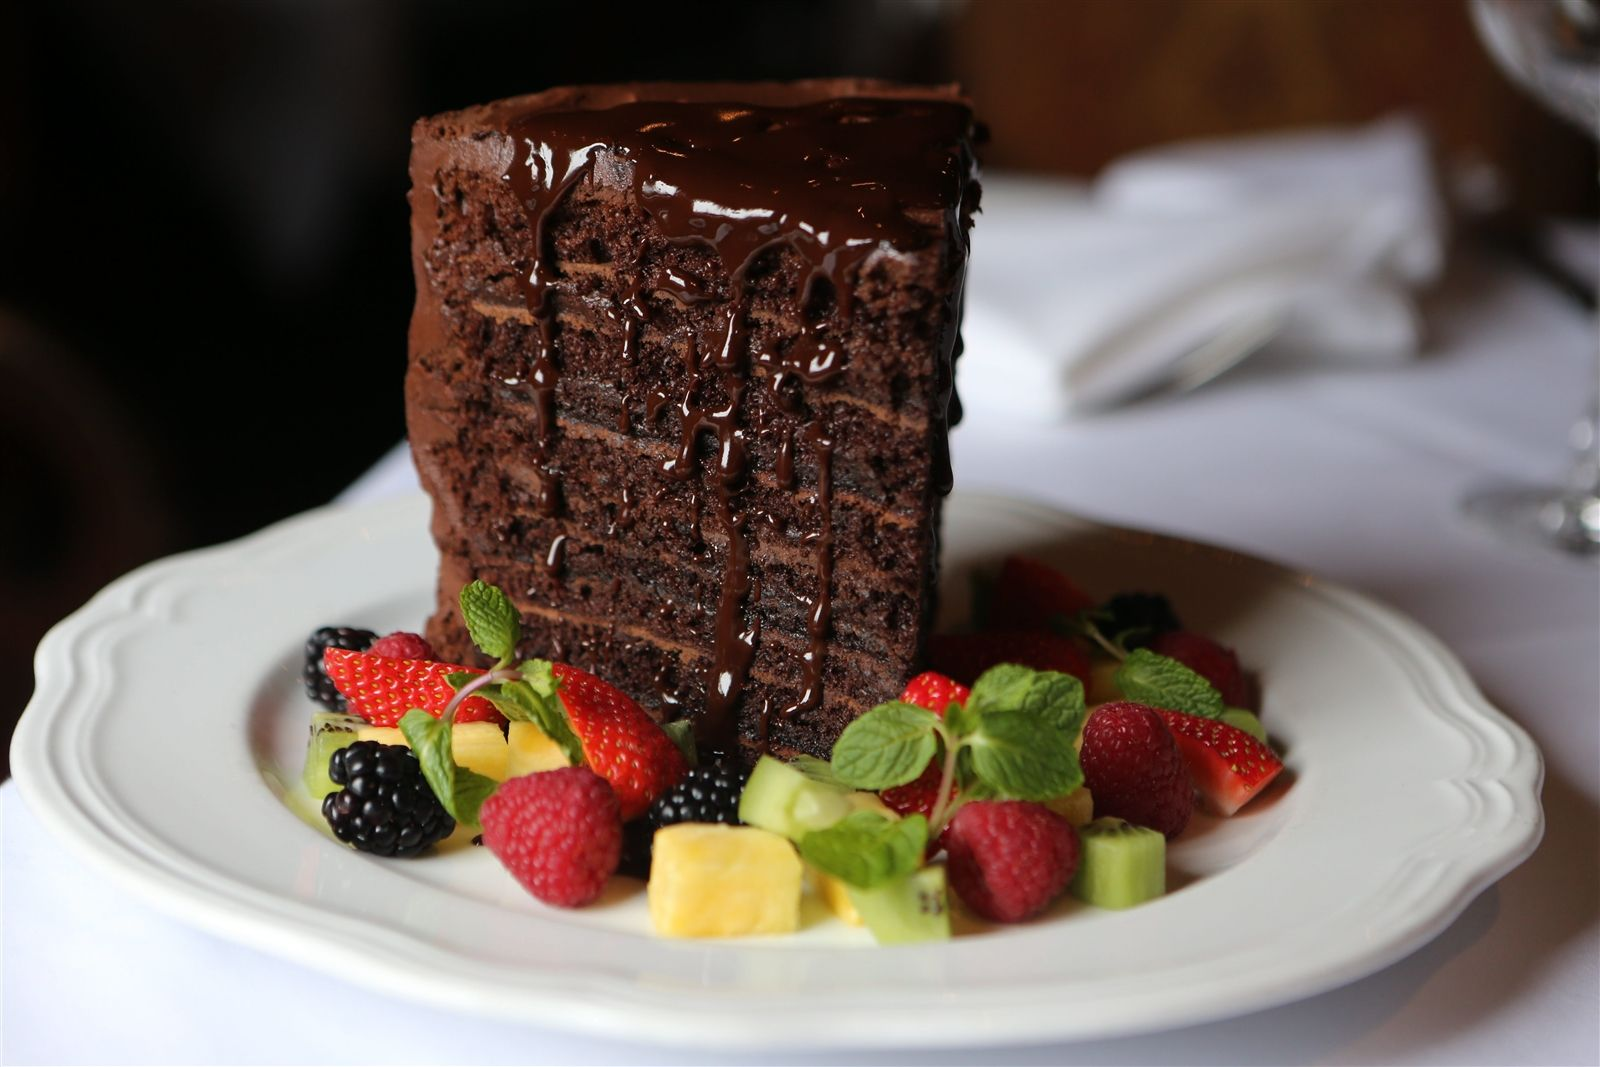 Chocolate Cake for 2 from the Buffalo Chophouse.